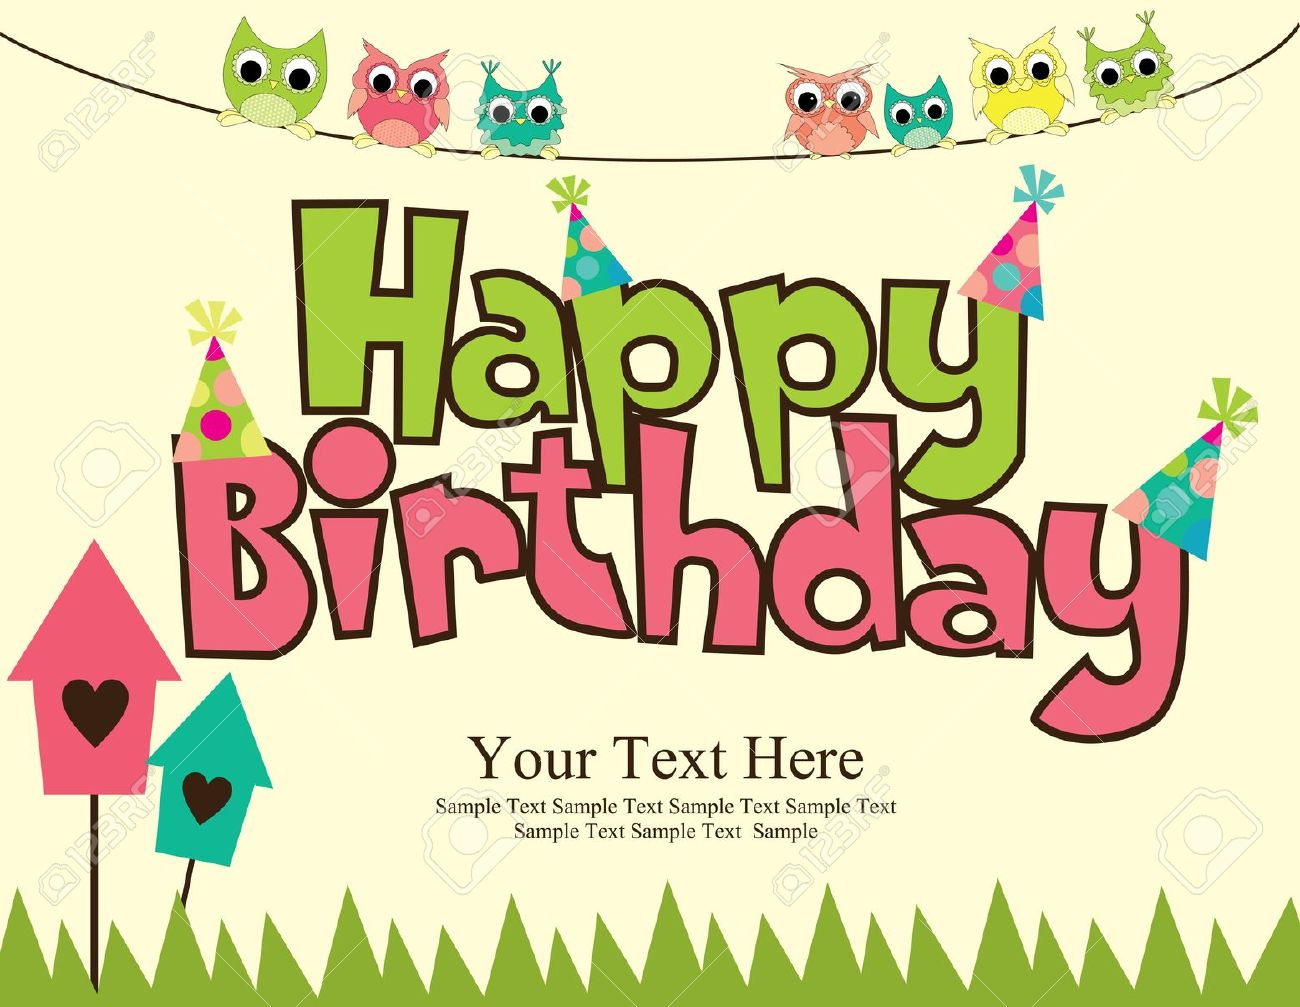 Greeting Cards Design Clipart 20 Free Cliparts